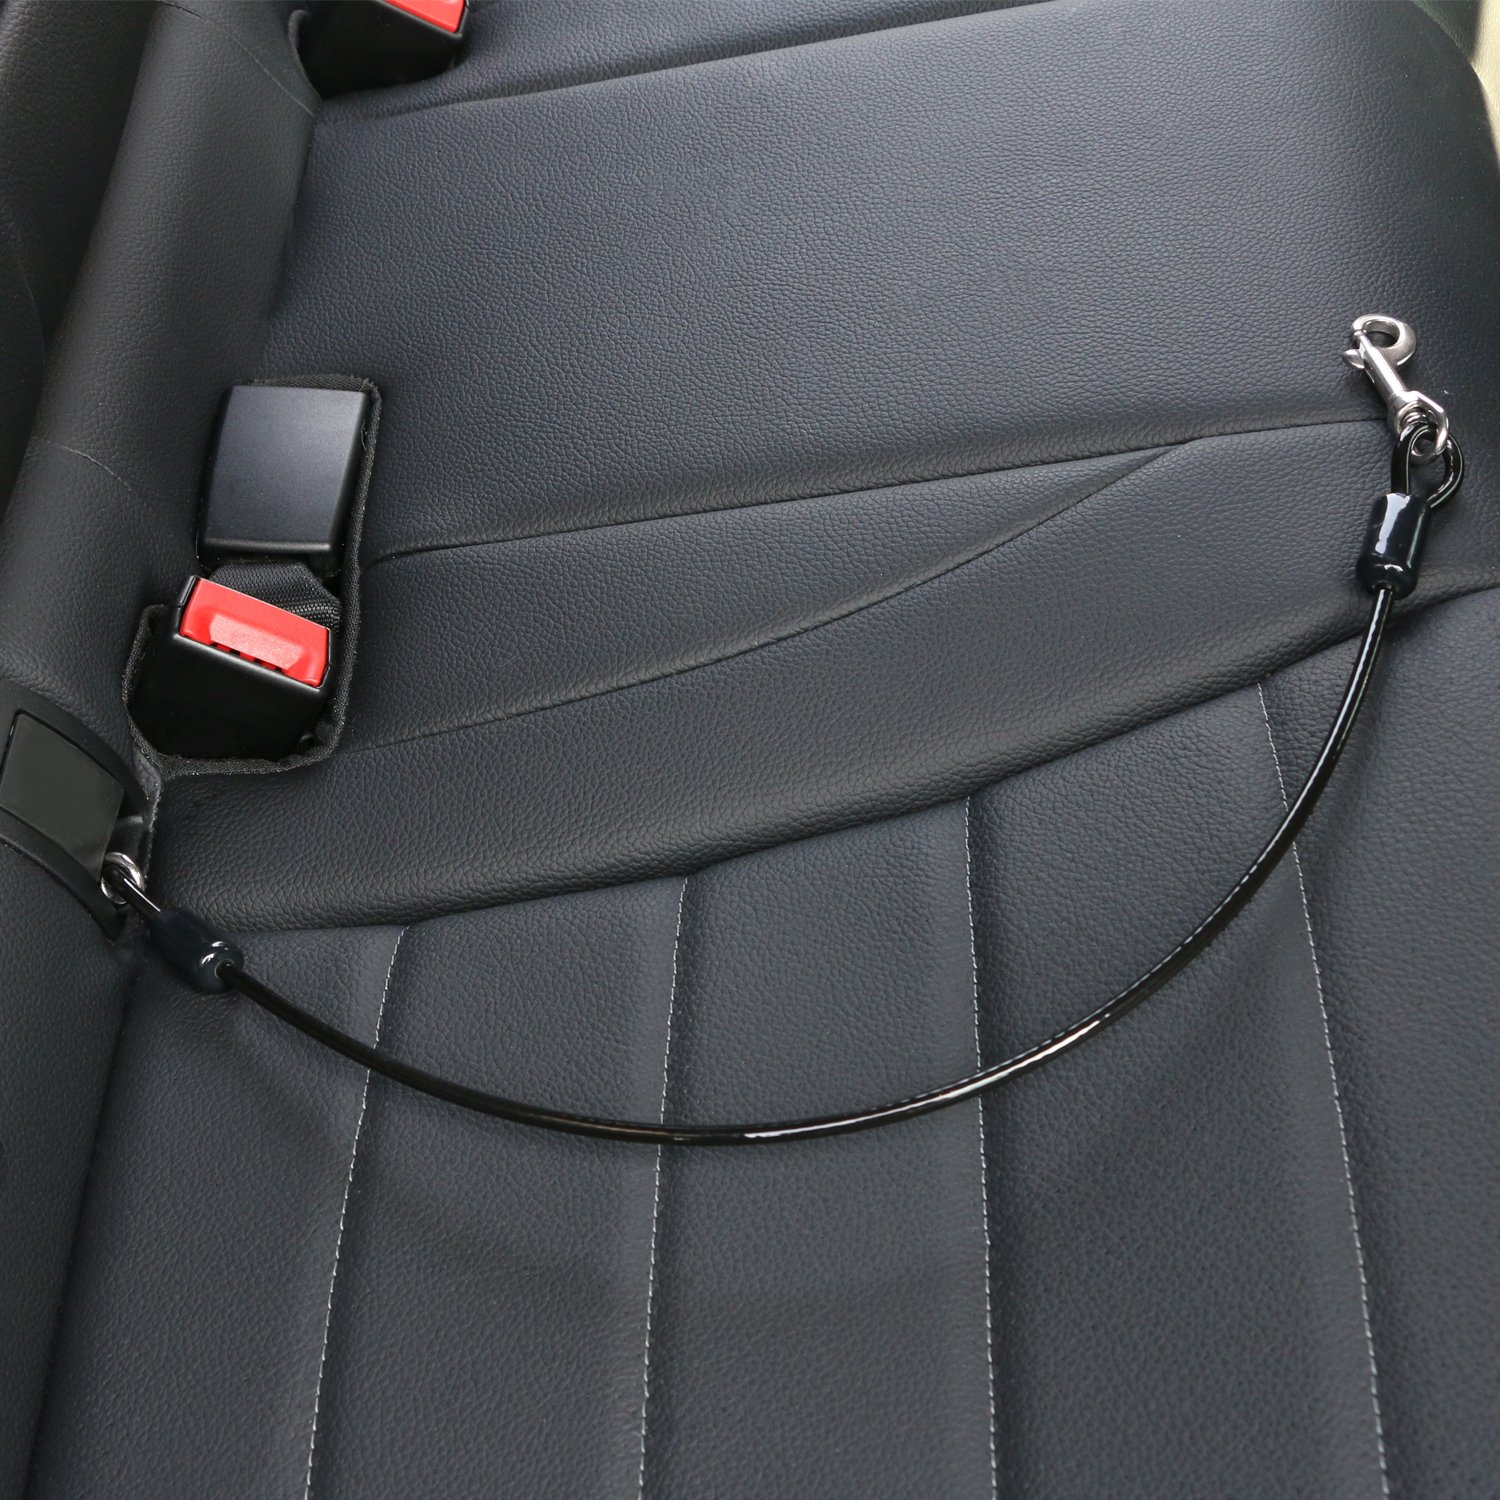 ENJOY PET Dog Seat Belt Car Seatbelts for dog Restraint Tether, Chew-proof Cable Seatbelt for Large Dogs, Coated Cable Vehicle Seatbelts for Safety, Large Size